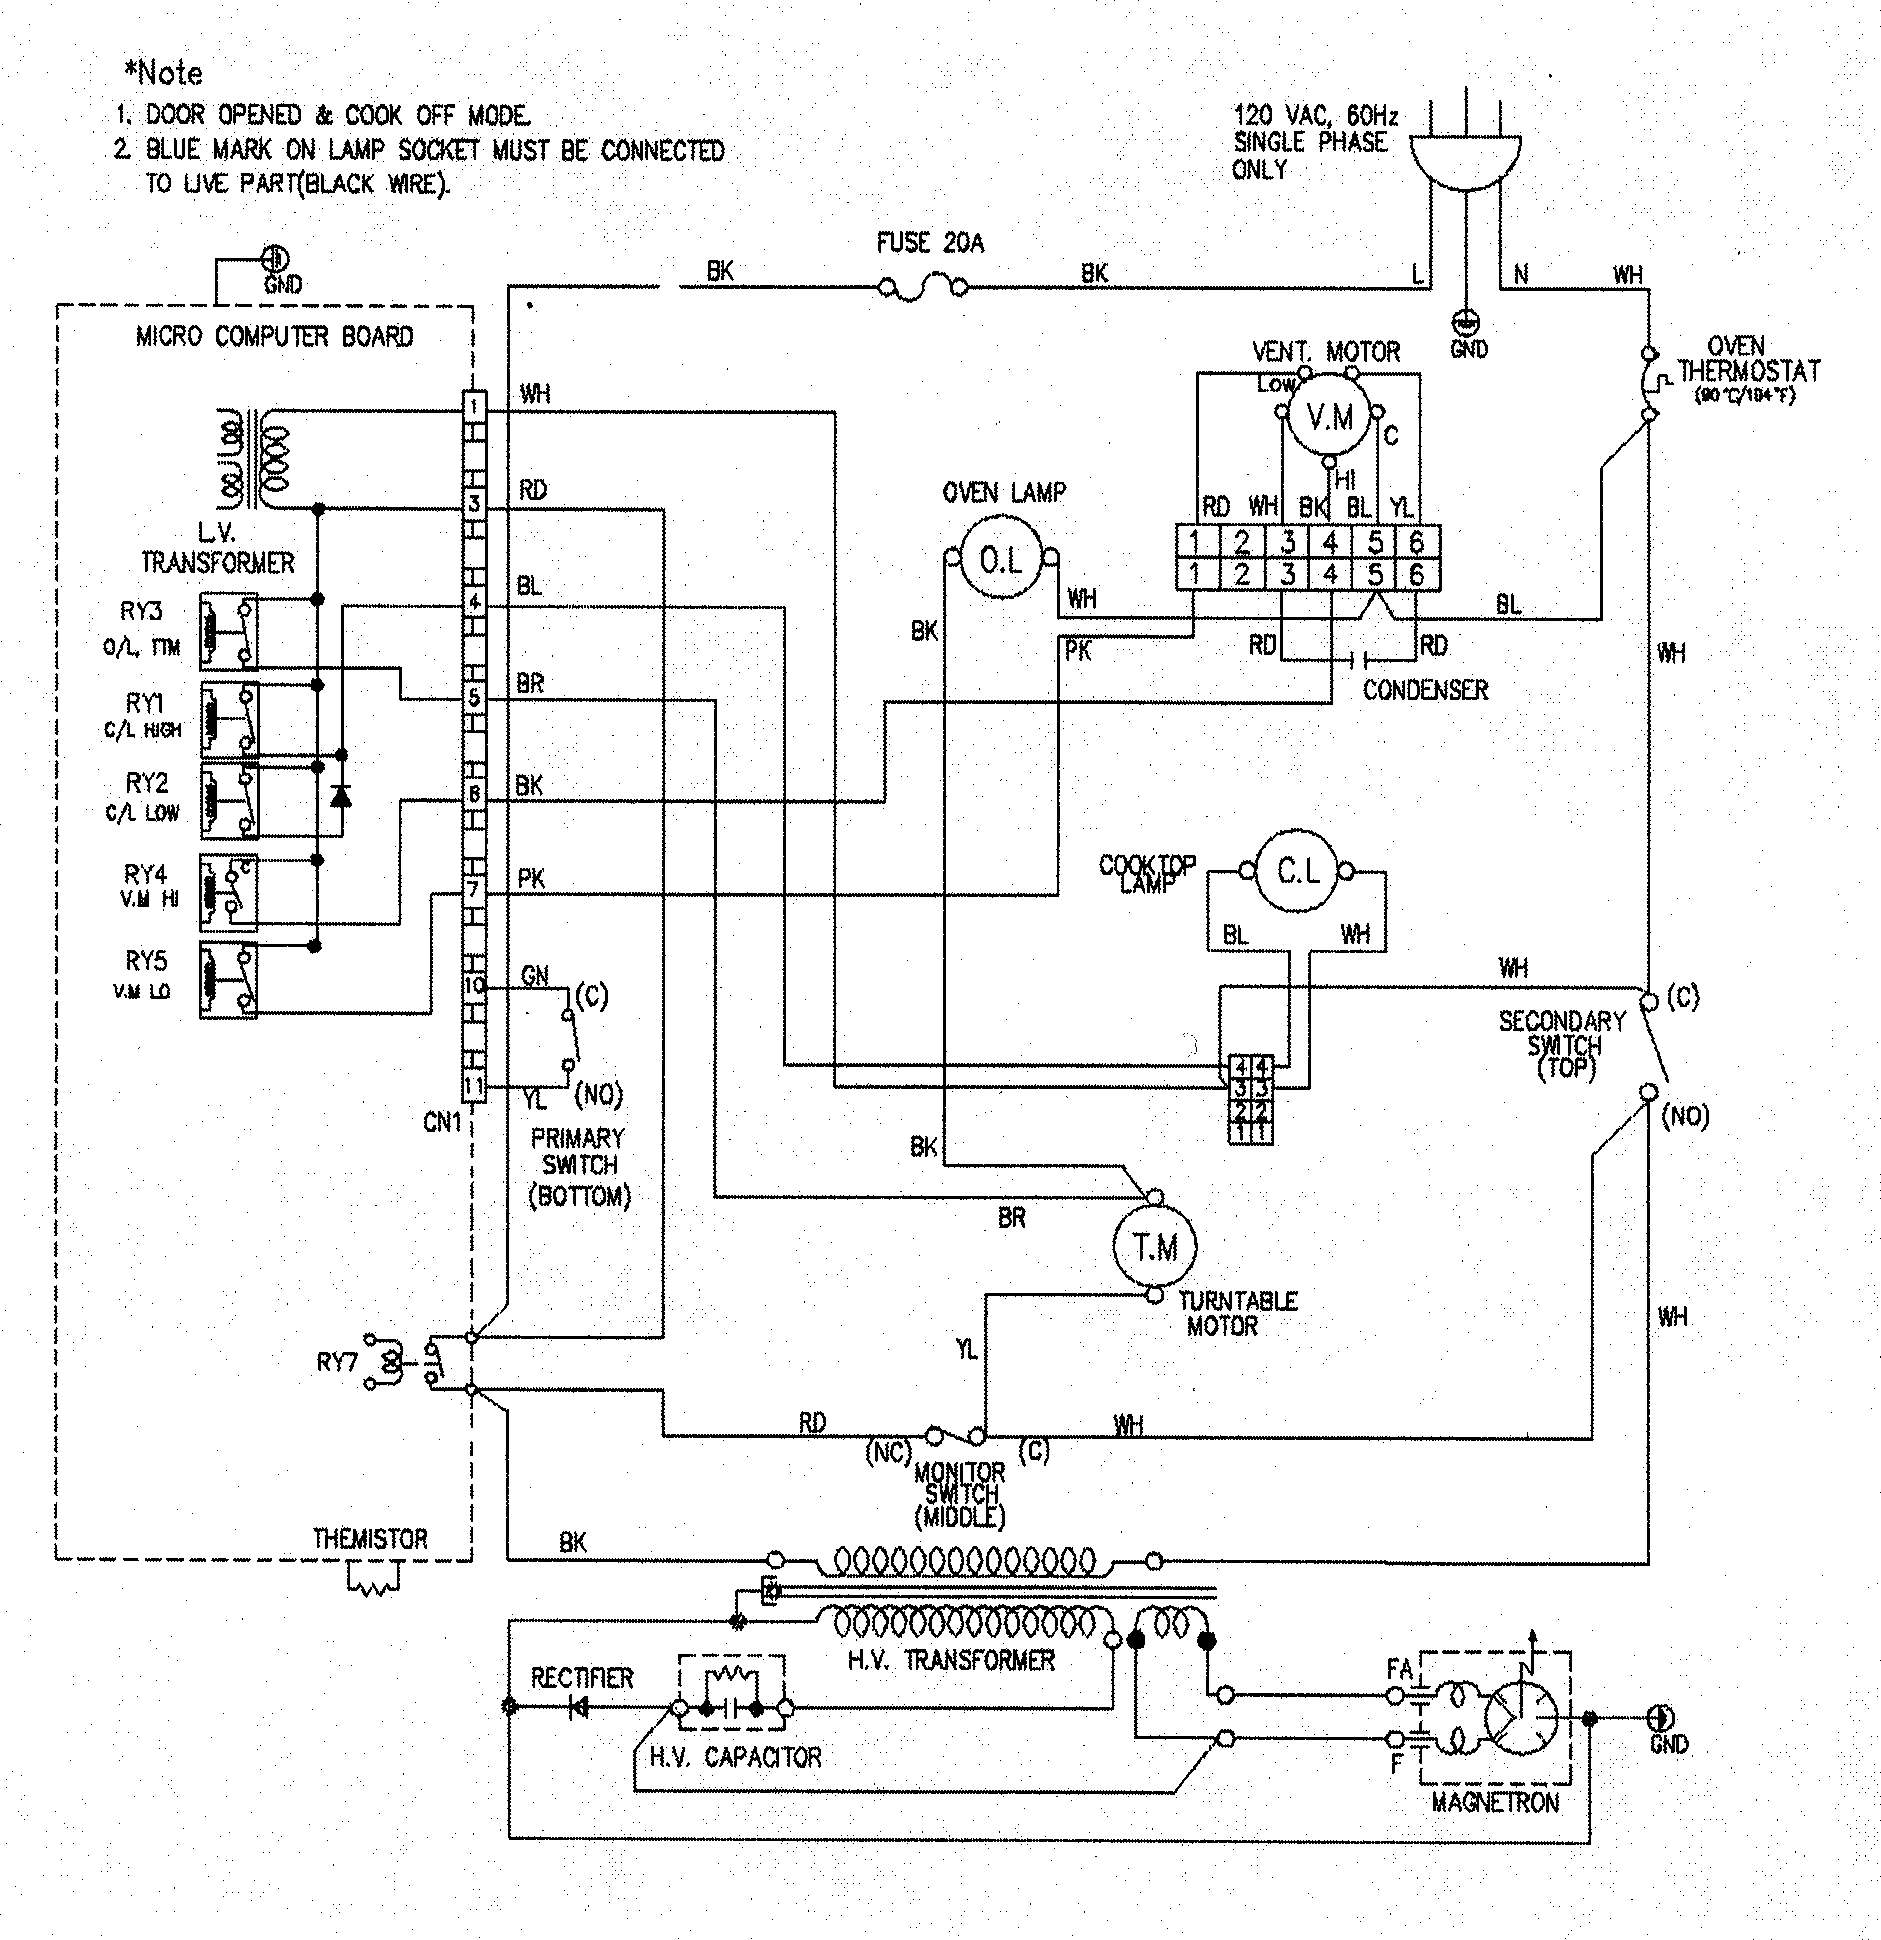 hight resolution of microwave schematic wiring diagram centredownload microwave ovens schematic diagrams and service manuals s